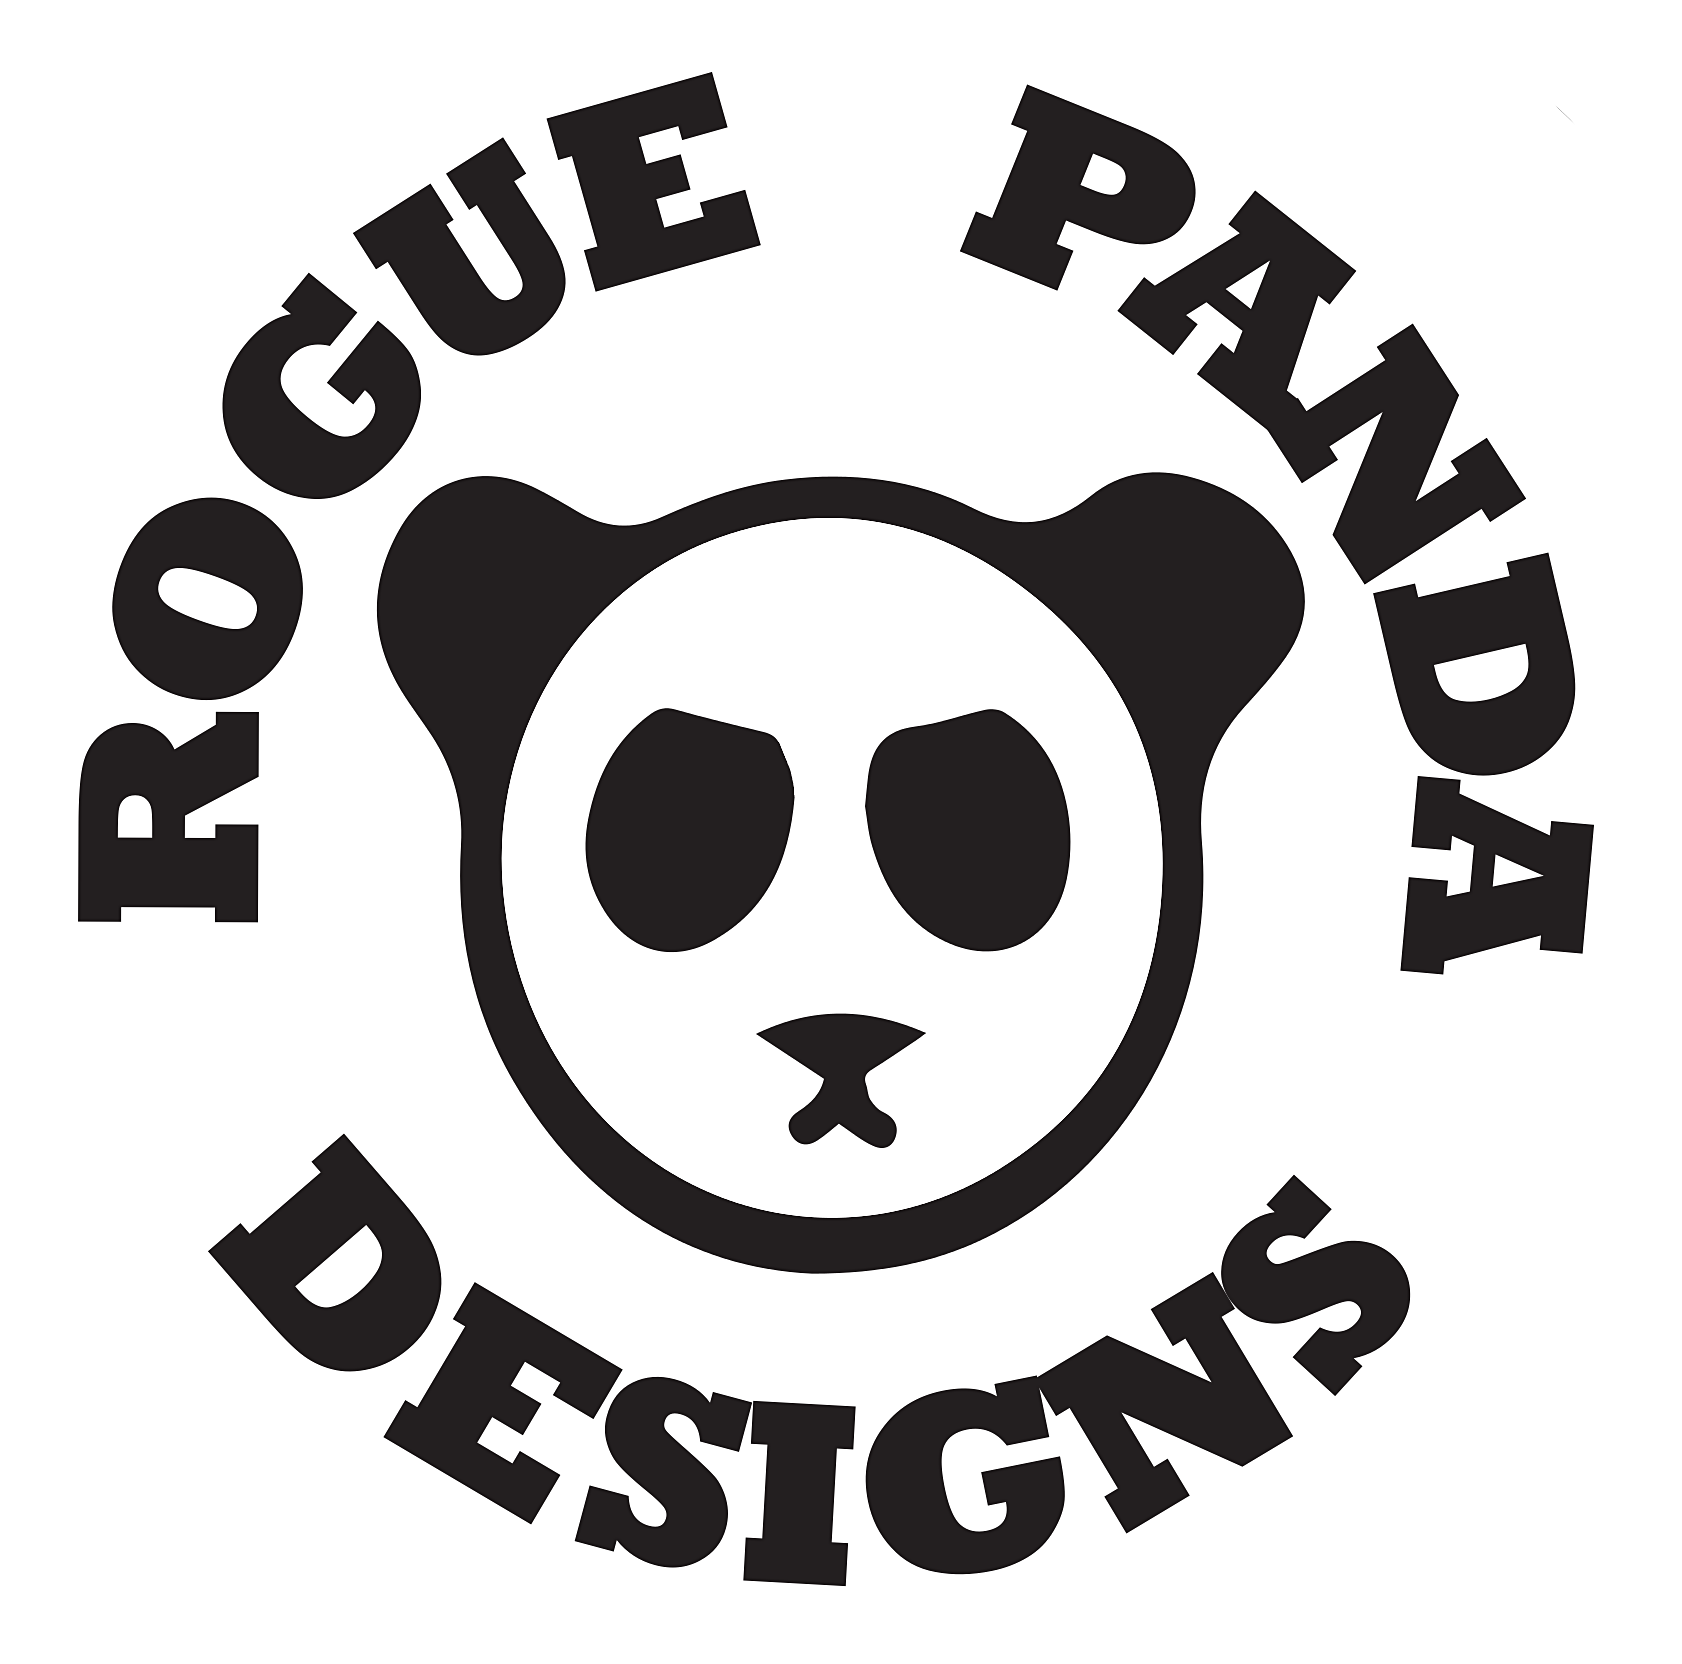 rogue panda designs as exhibitor in sedona mountain bike festival